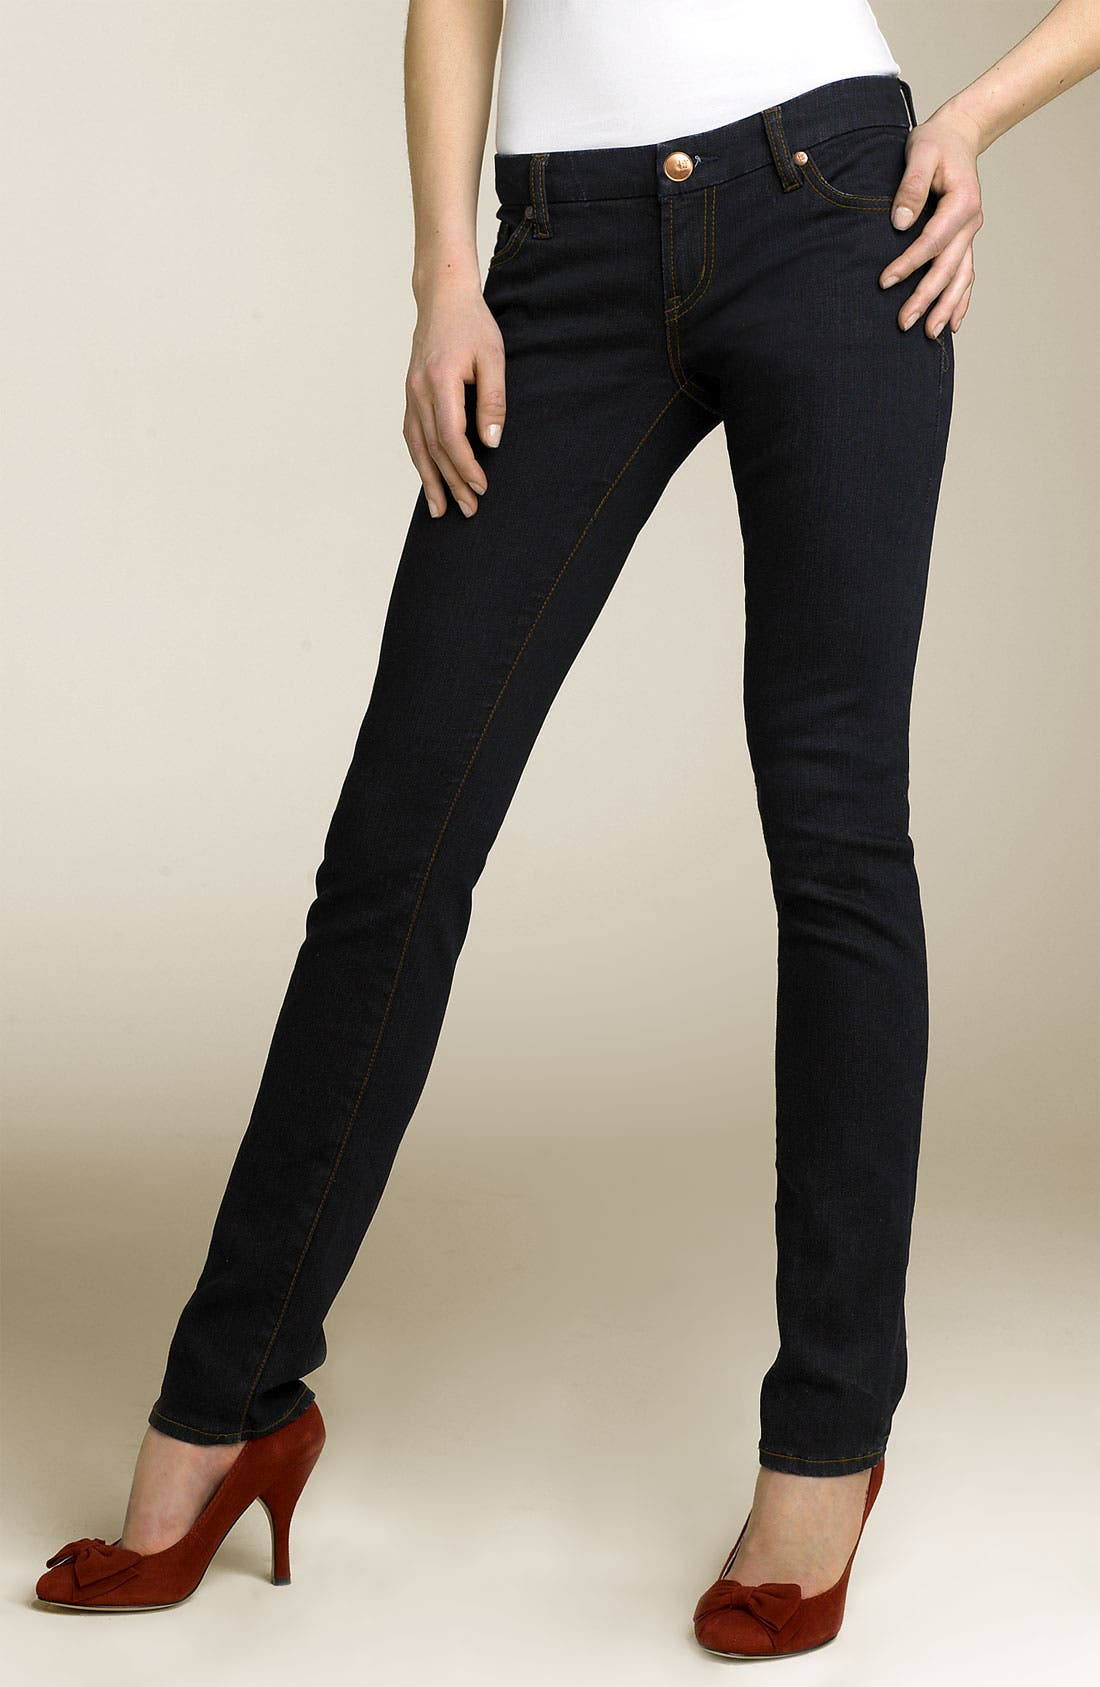 Alternate Image 1 Selected - !iT Collective 'Rising Starlet' Skinny Stretch Jeans (Juniors)